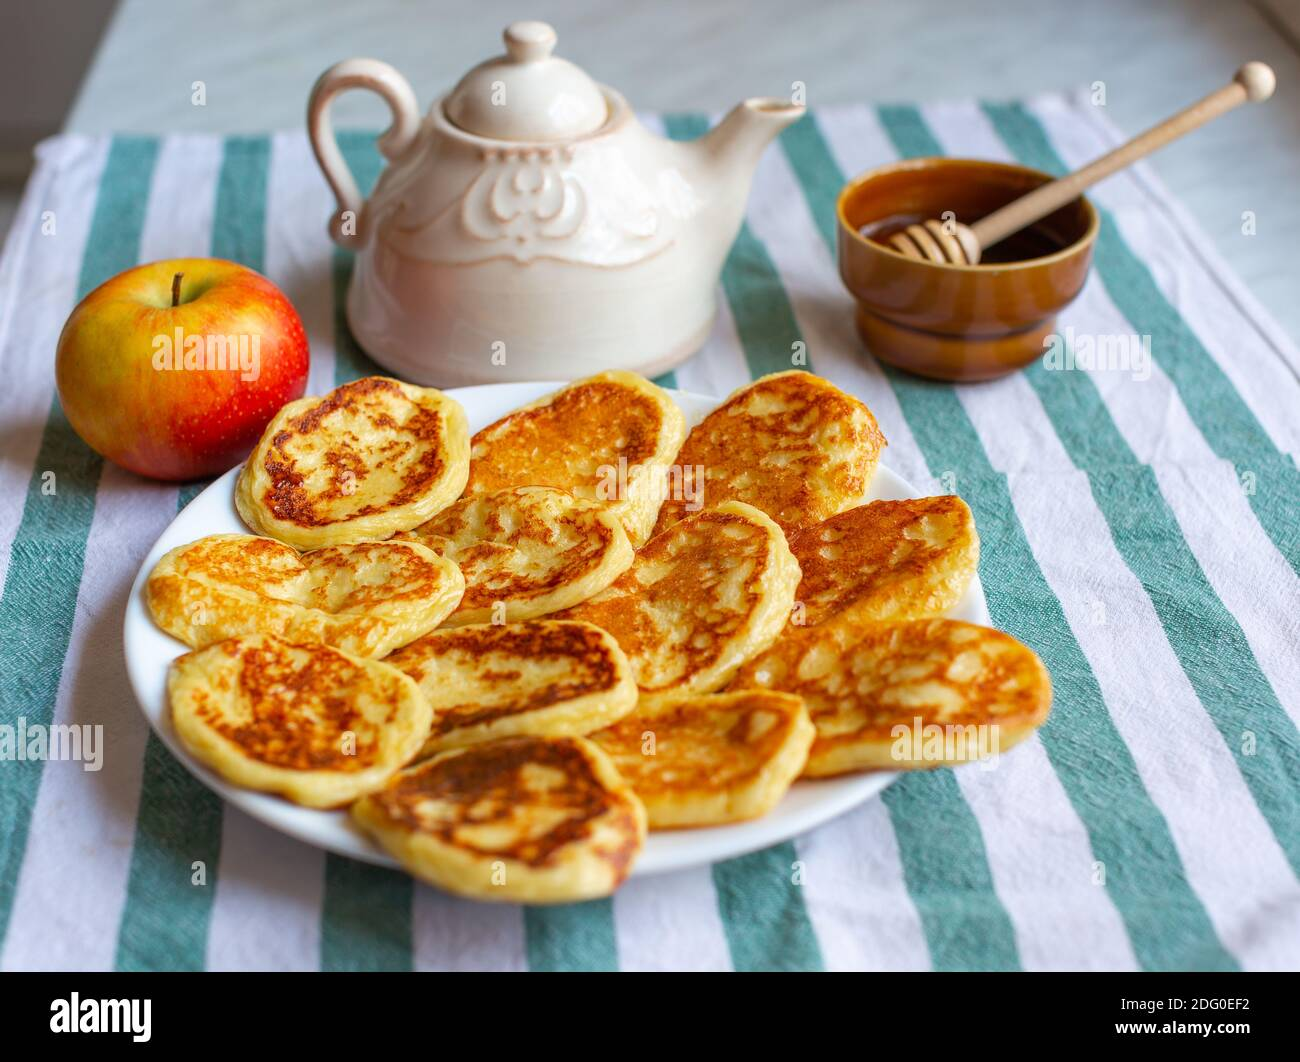 Tasty homemade pancakes laid out on plate near an apple, teapot and bowl of honey . Selective focus on pancakes Stock Photo